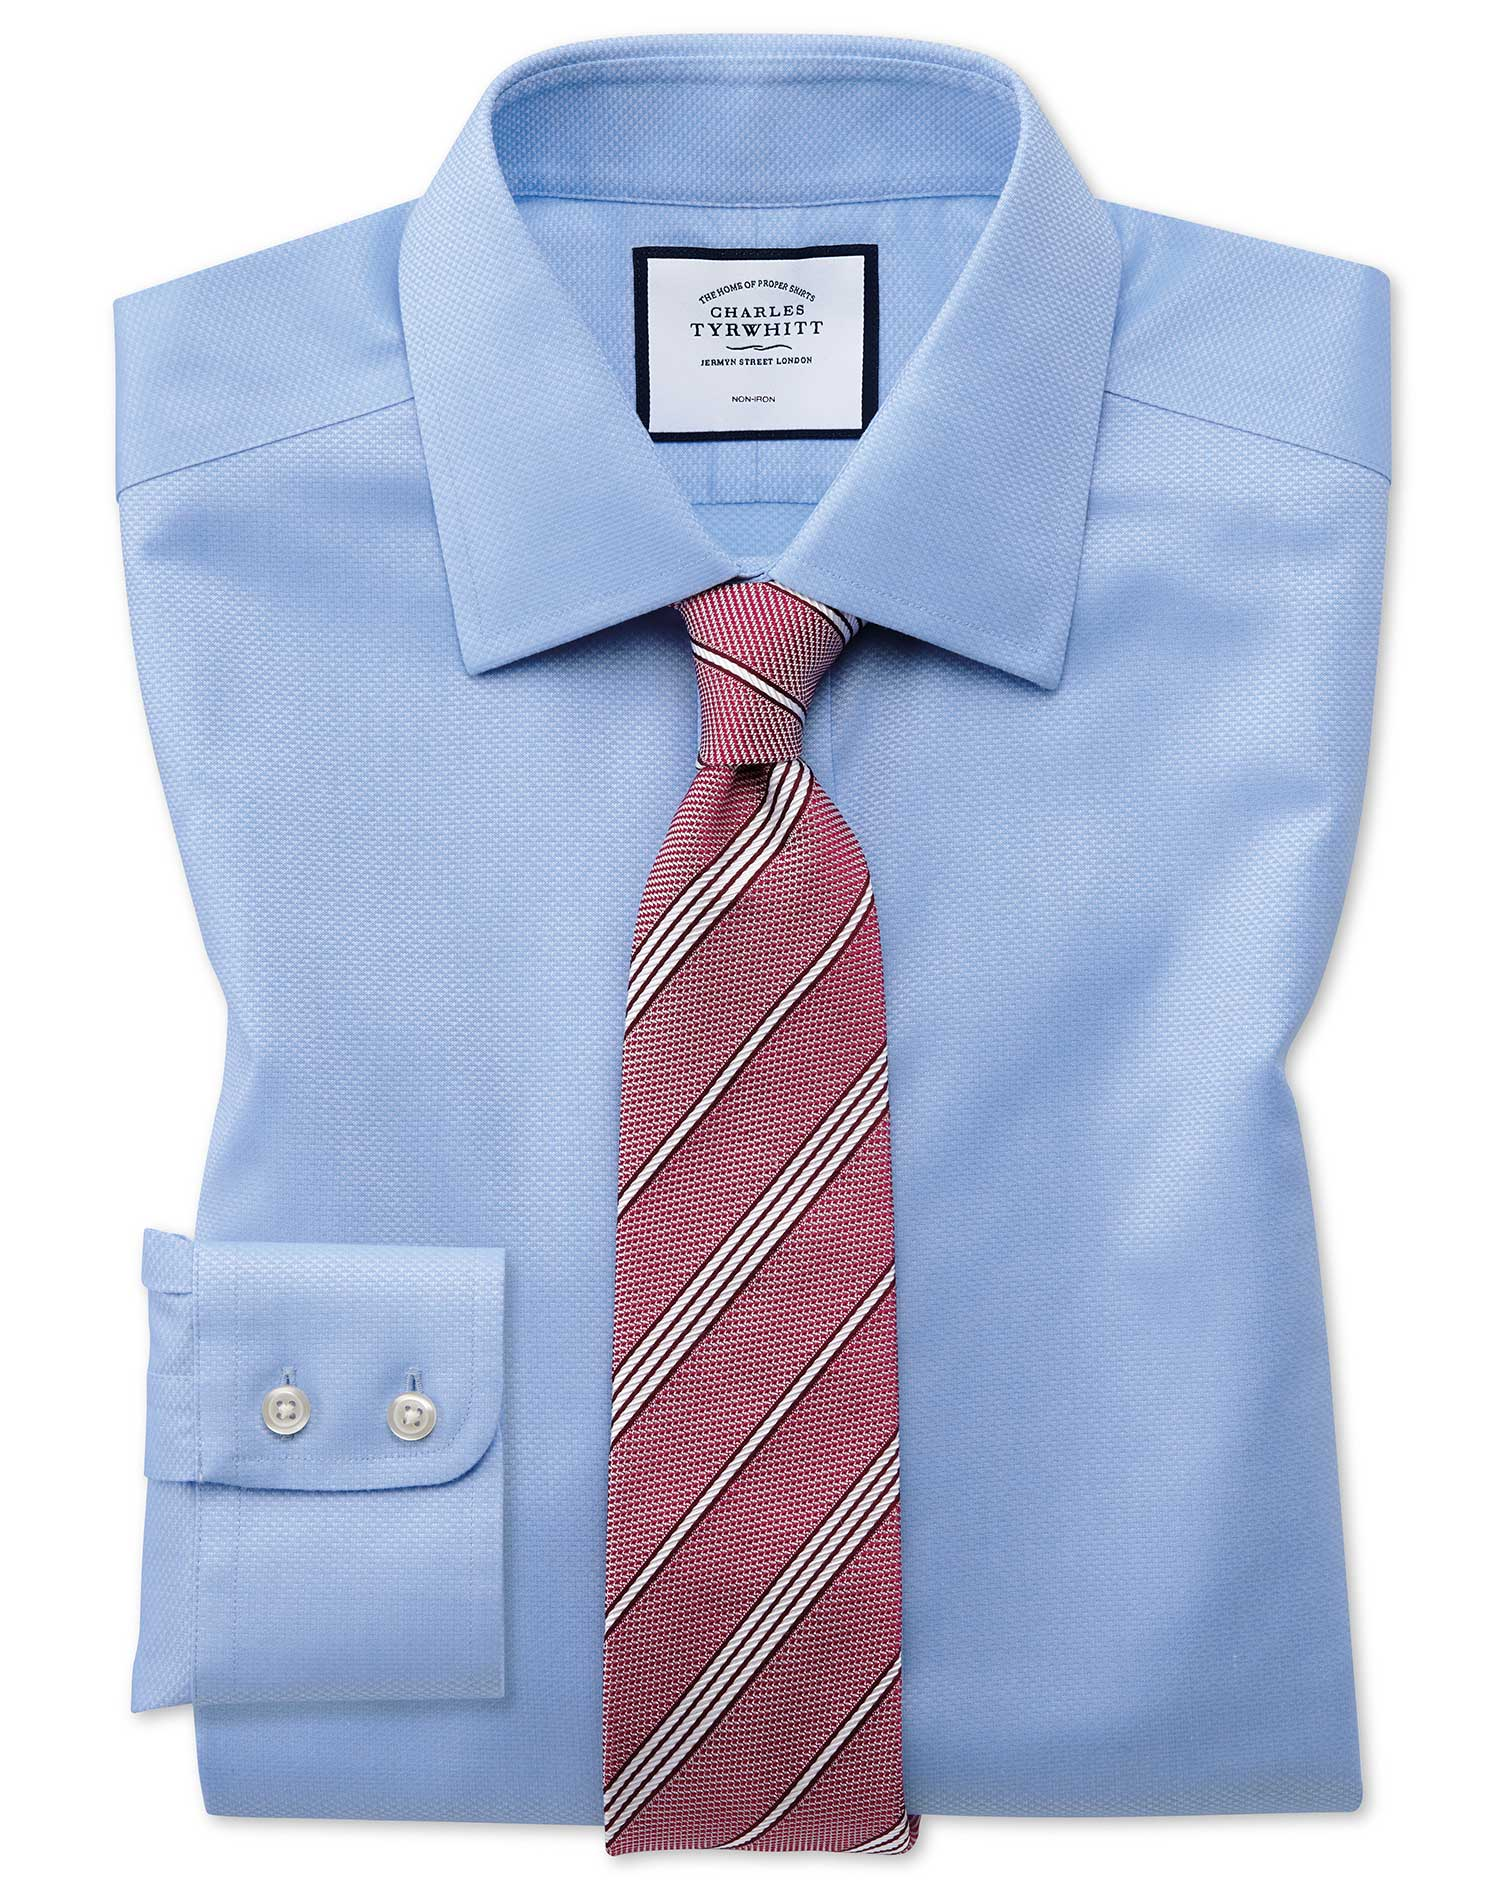 Classic Fit Non-Iron Sky Blue Triangle Weave Cotton Formal Shirt Double Cuff Size 16/34 by Charles T